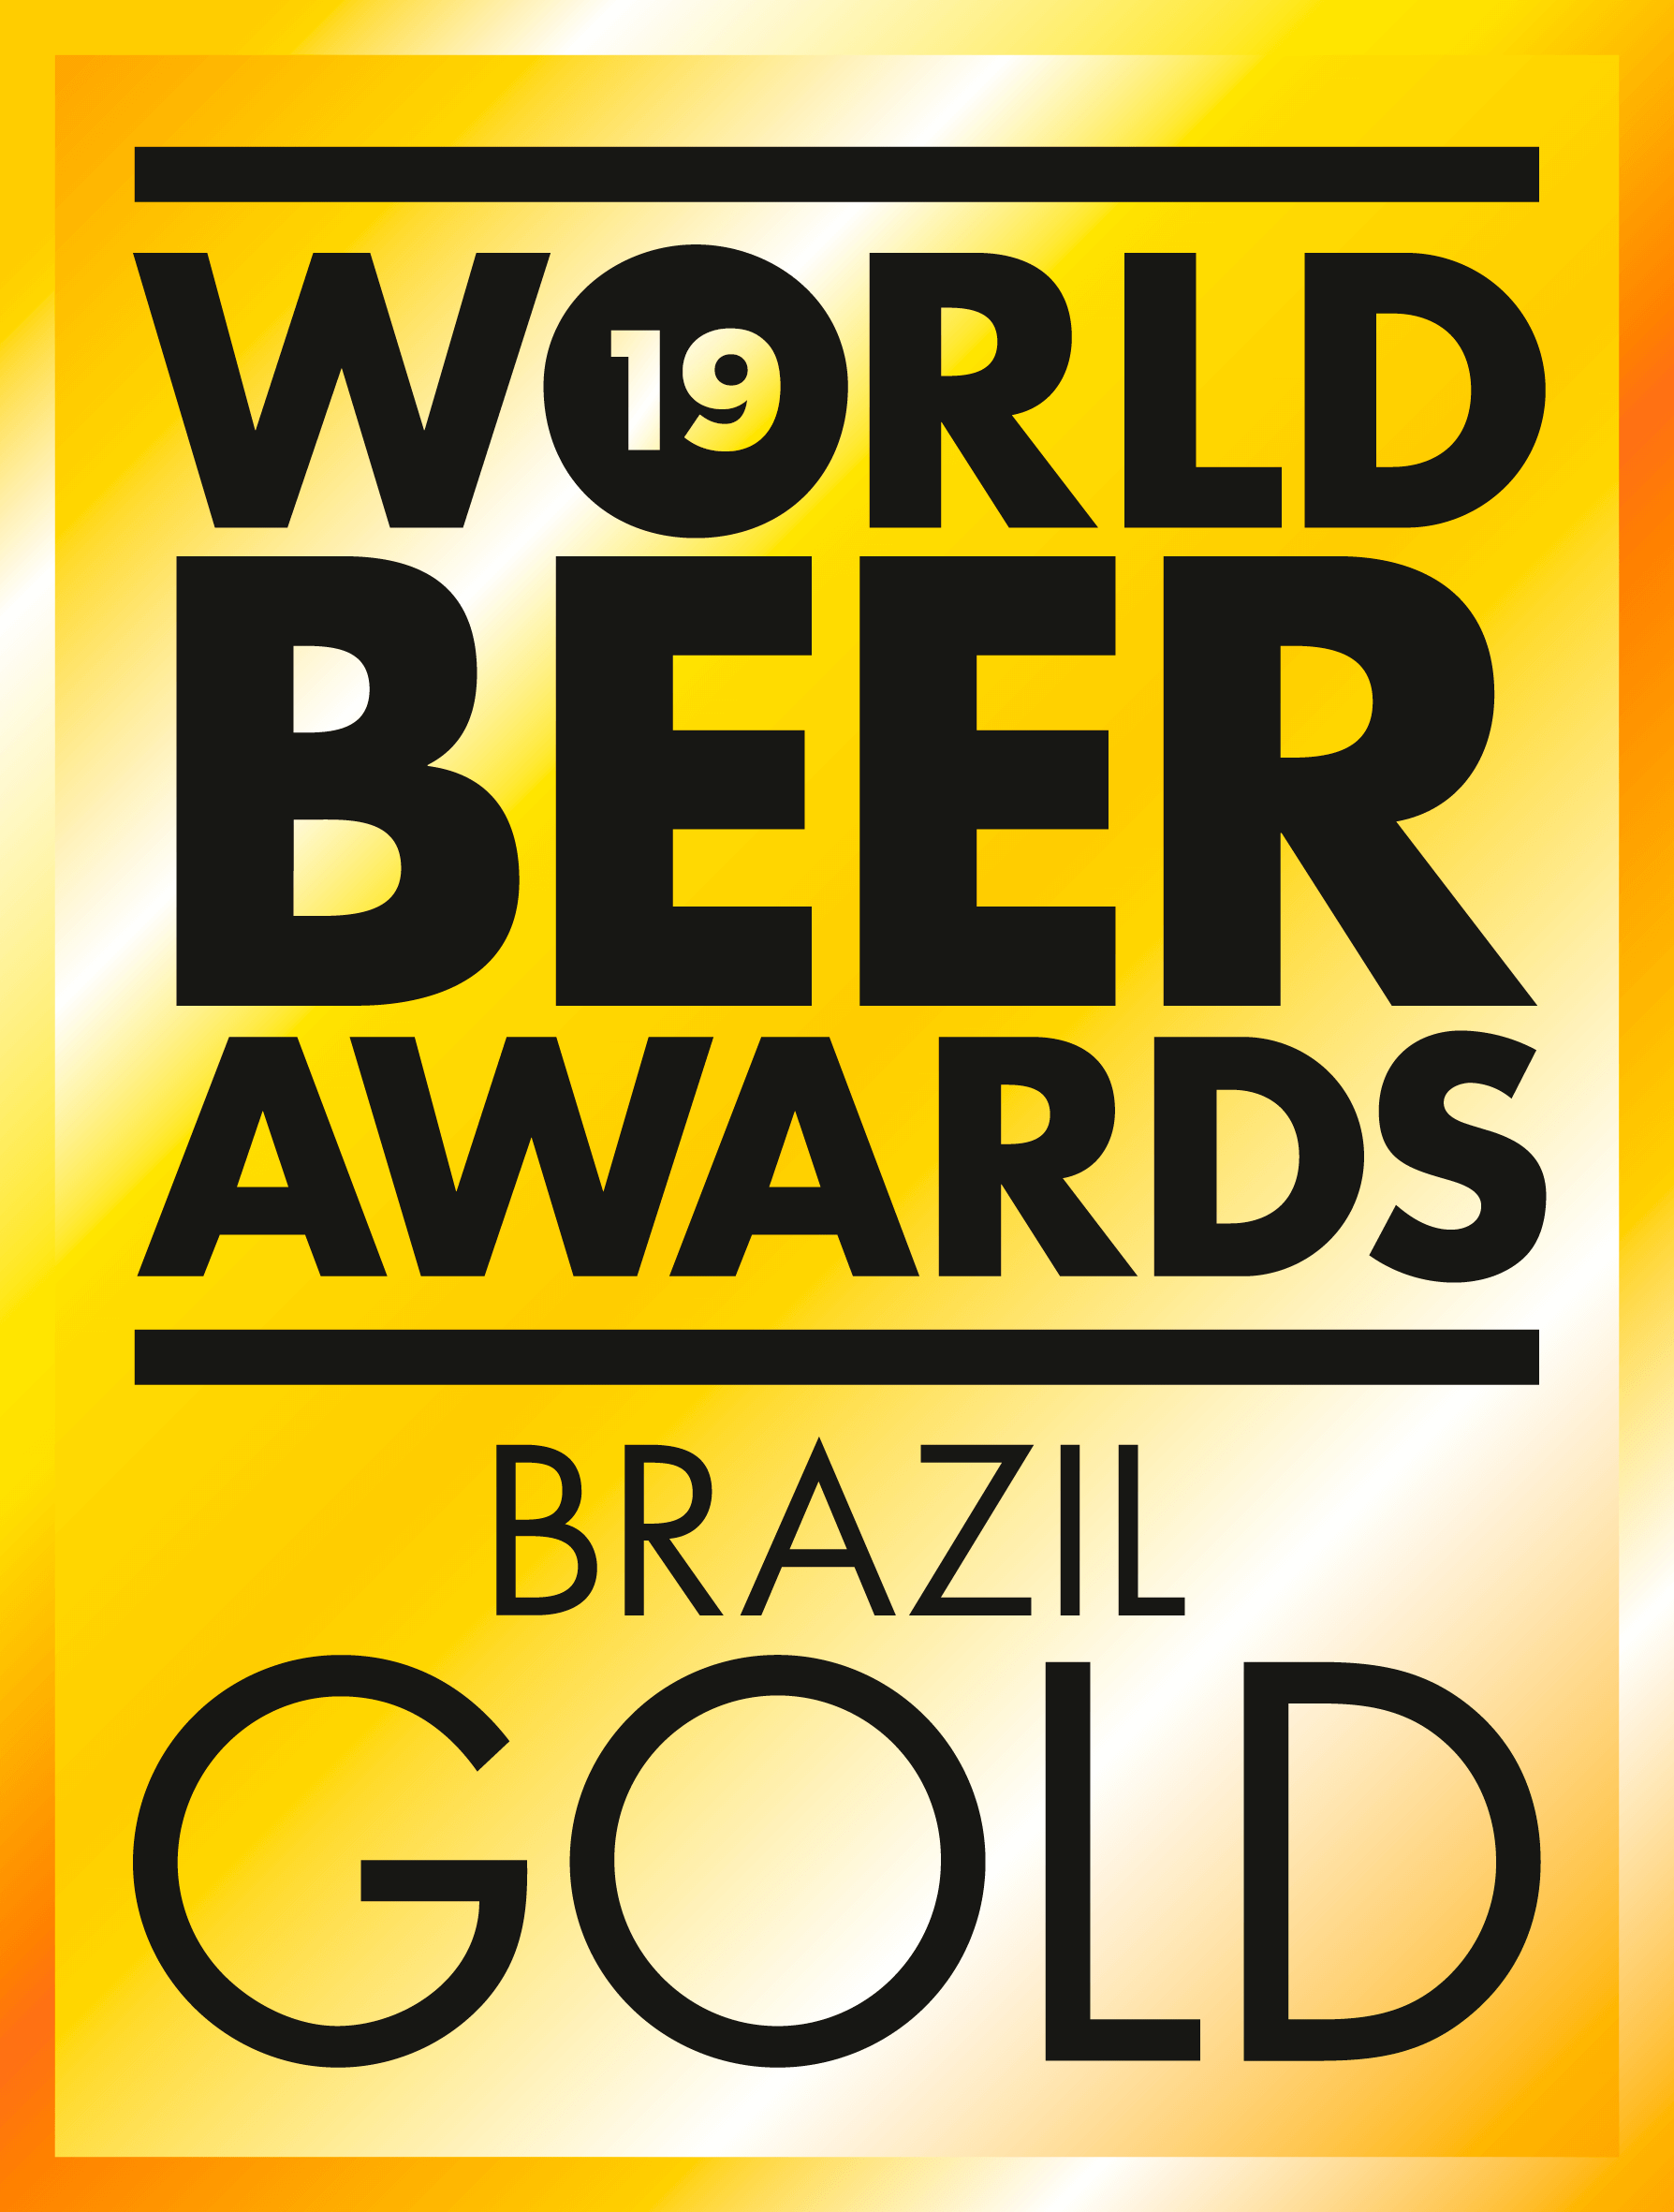 2019 World Beer Awards GOLD